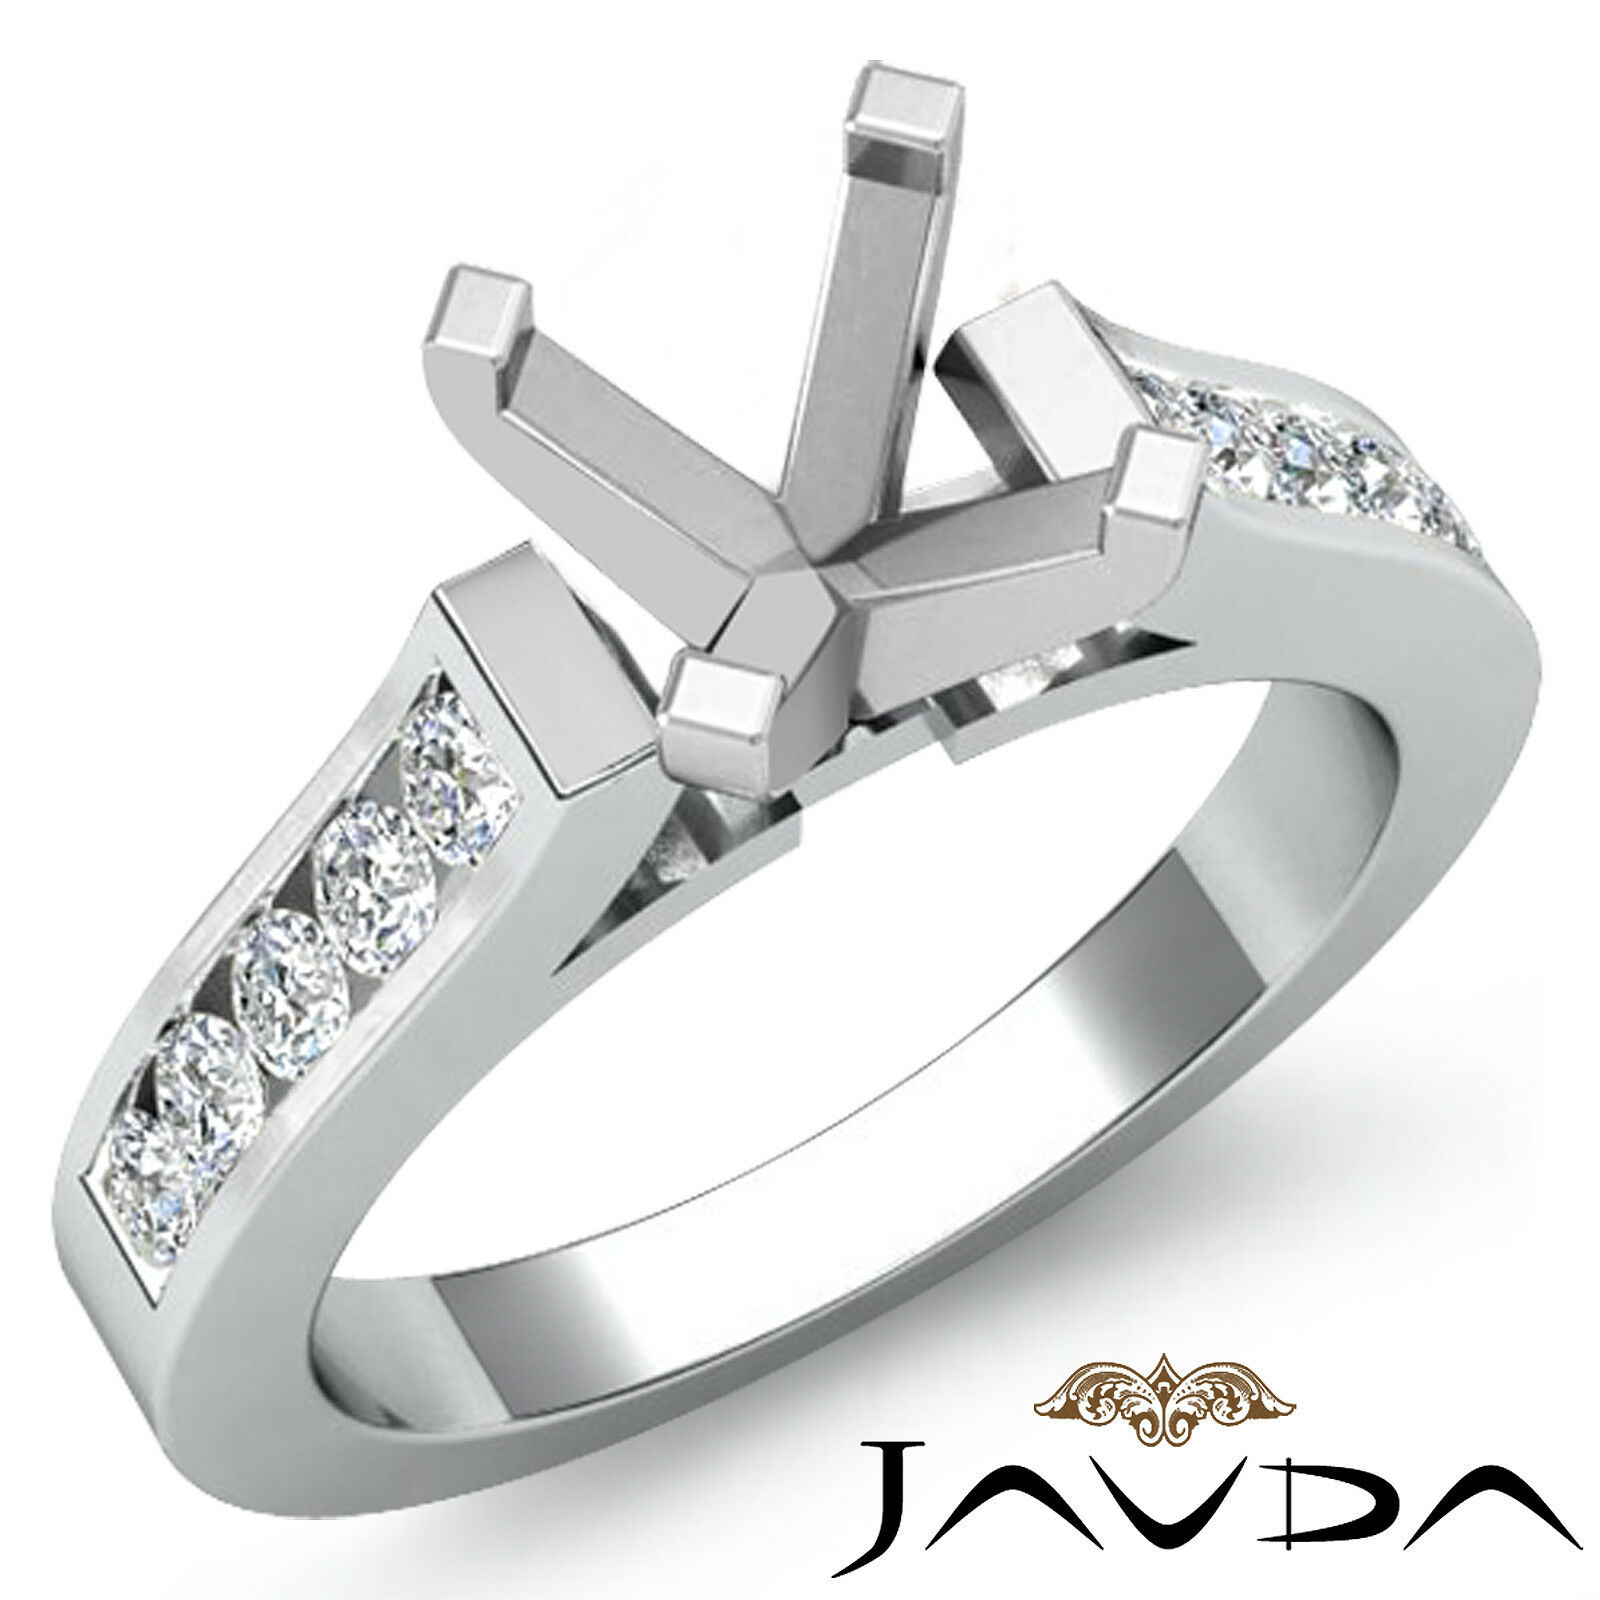 Round Channel Set Diamond Wedding Ring 14k White gold Round Semi Mount 0.3Ct